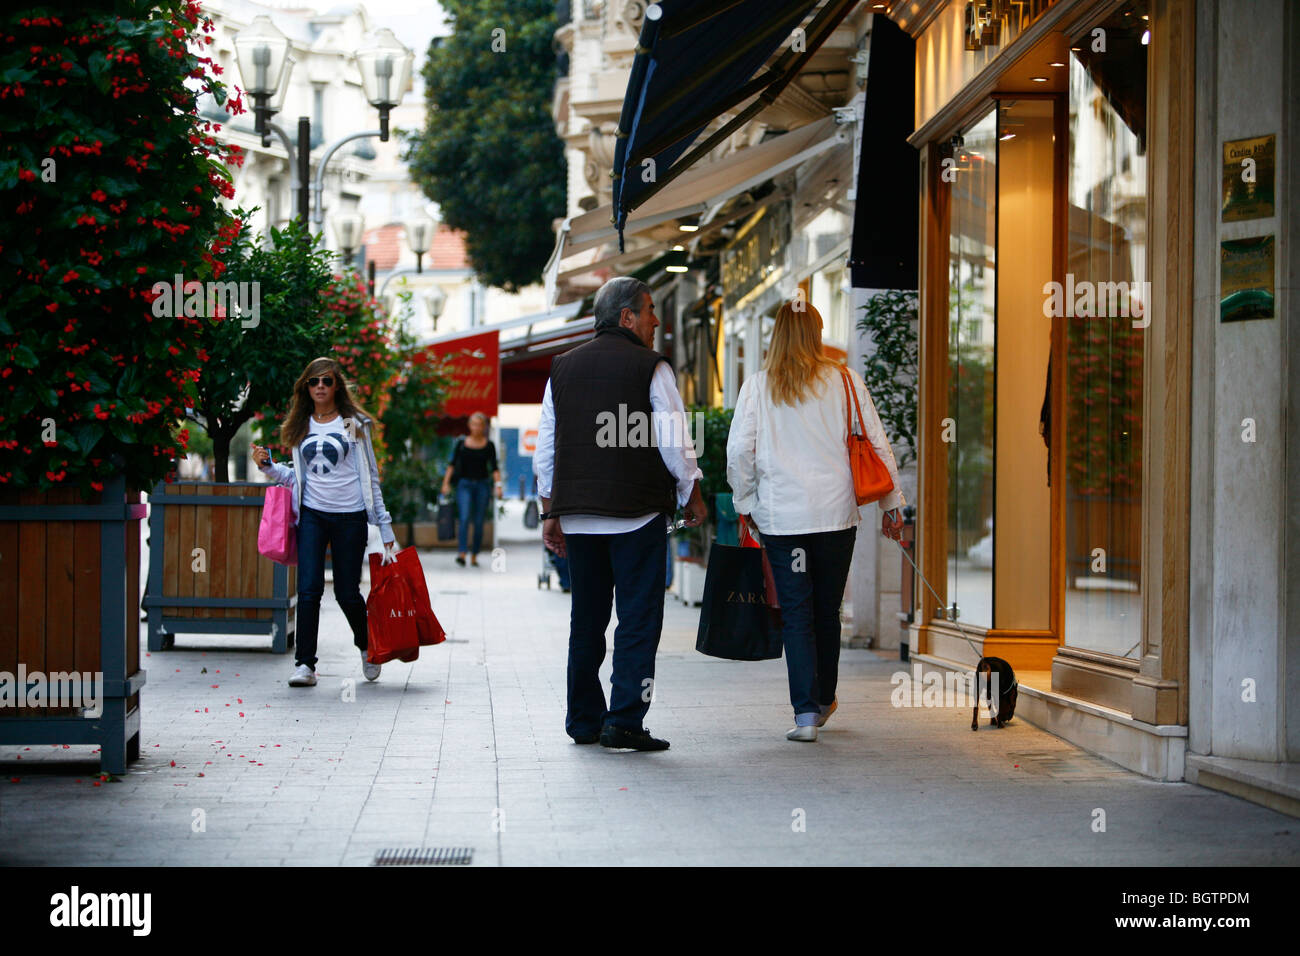 Boulevard des Moulins, the main shopping street in Monte Carlo, Monaco. - Stock Image